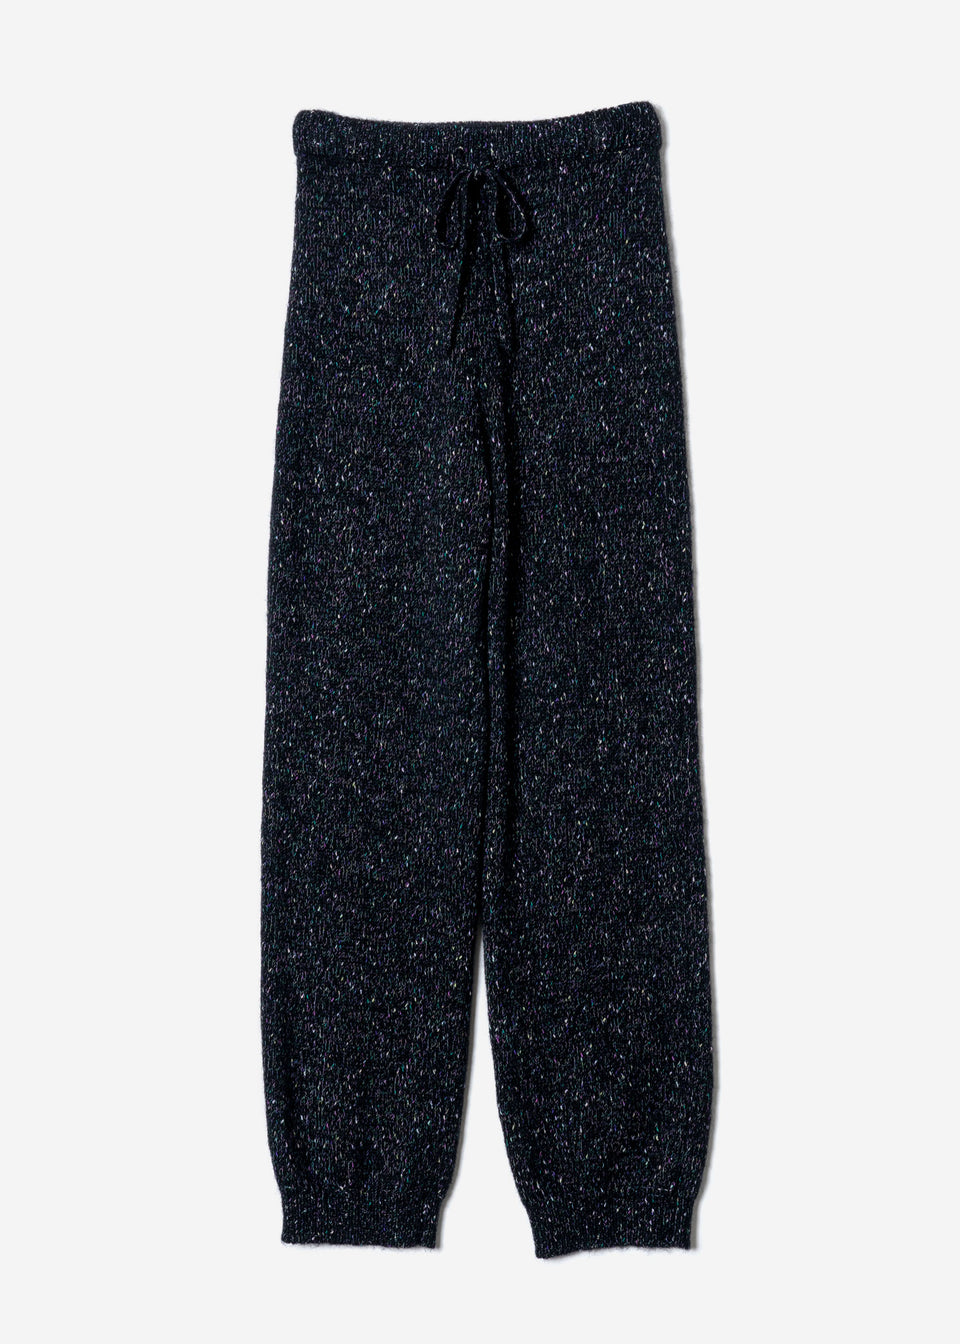 Splash Nep Knit Pants in Black Mix